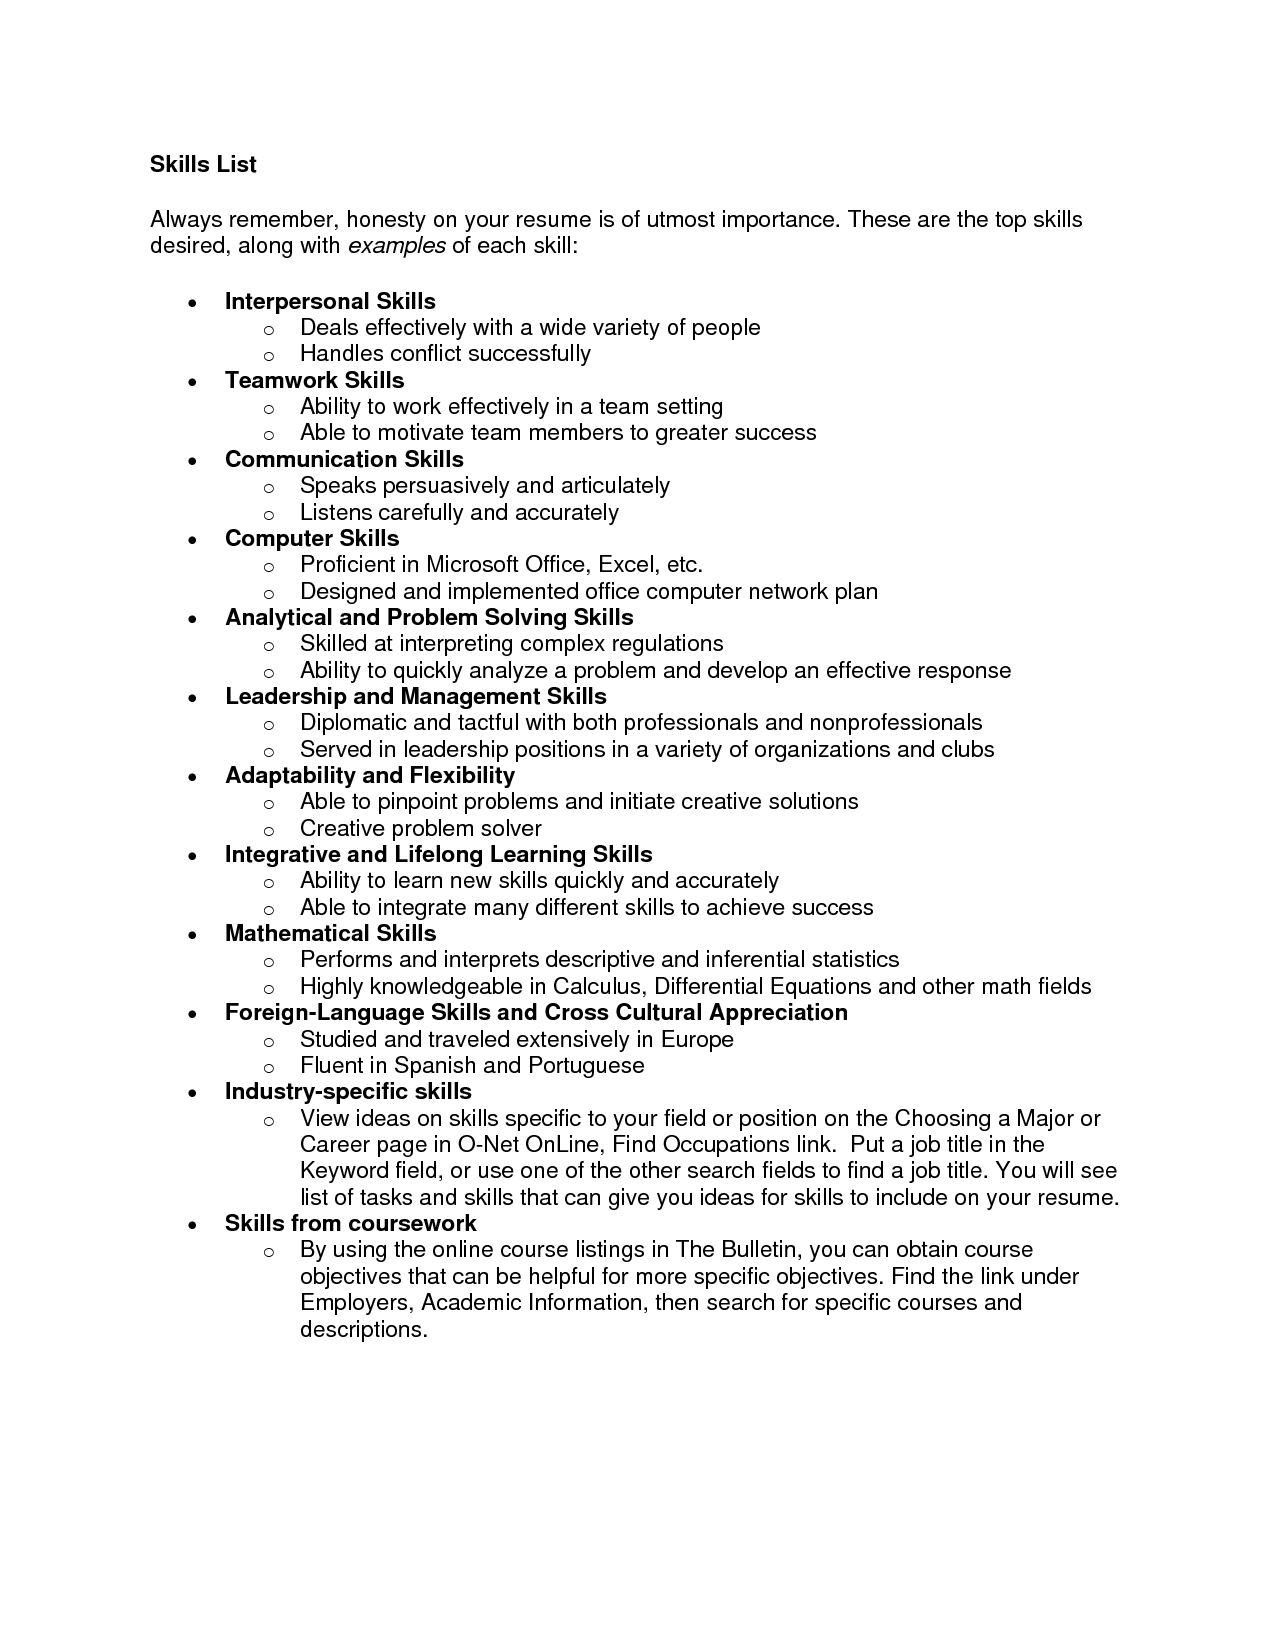 Skills On A Resume Examples Resume Additional Skills Examples Sample Hard Information And